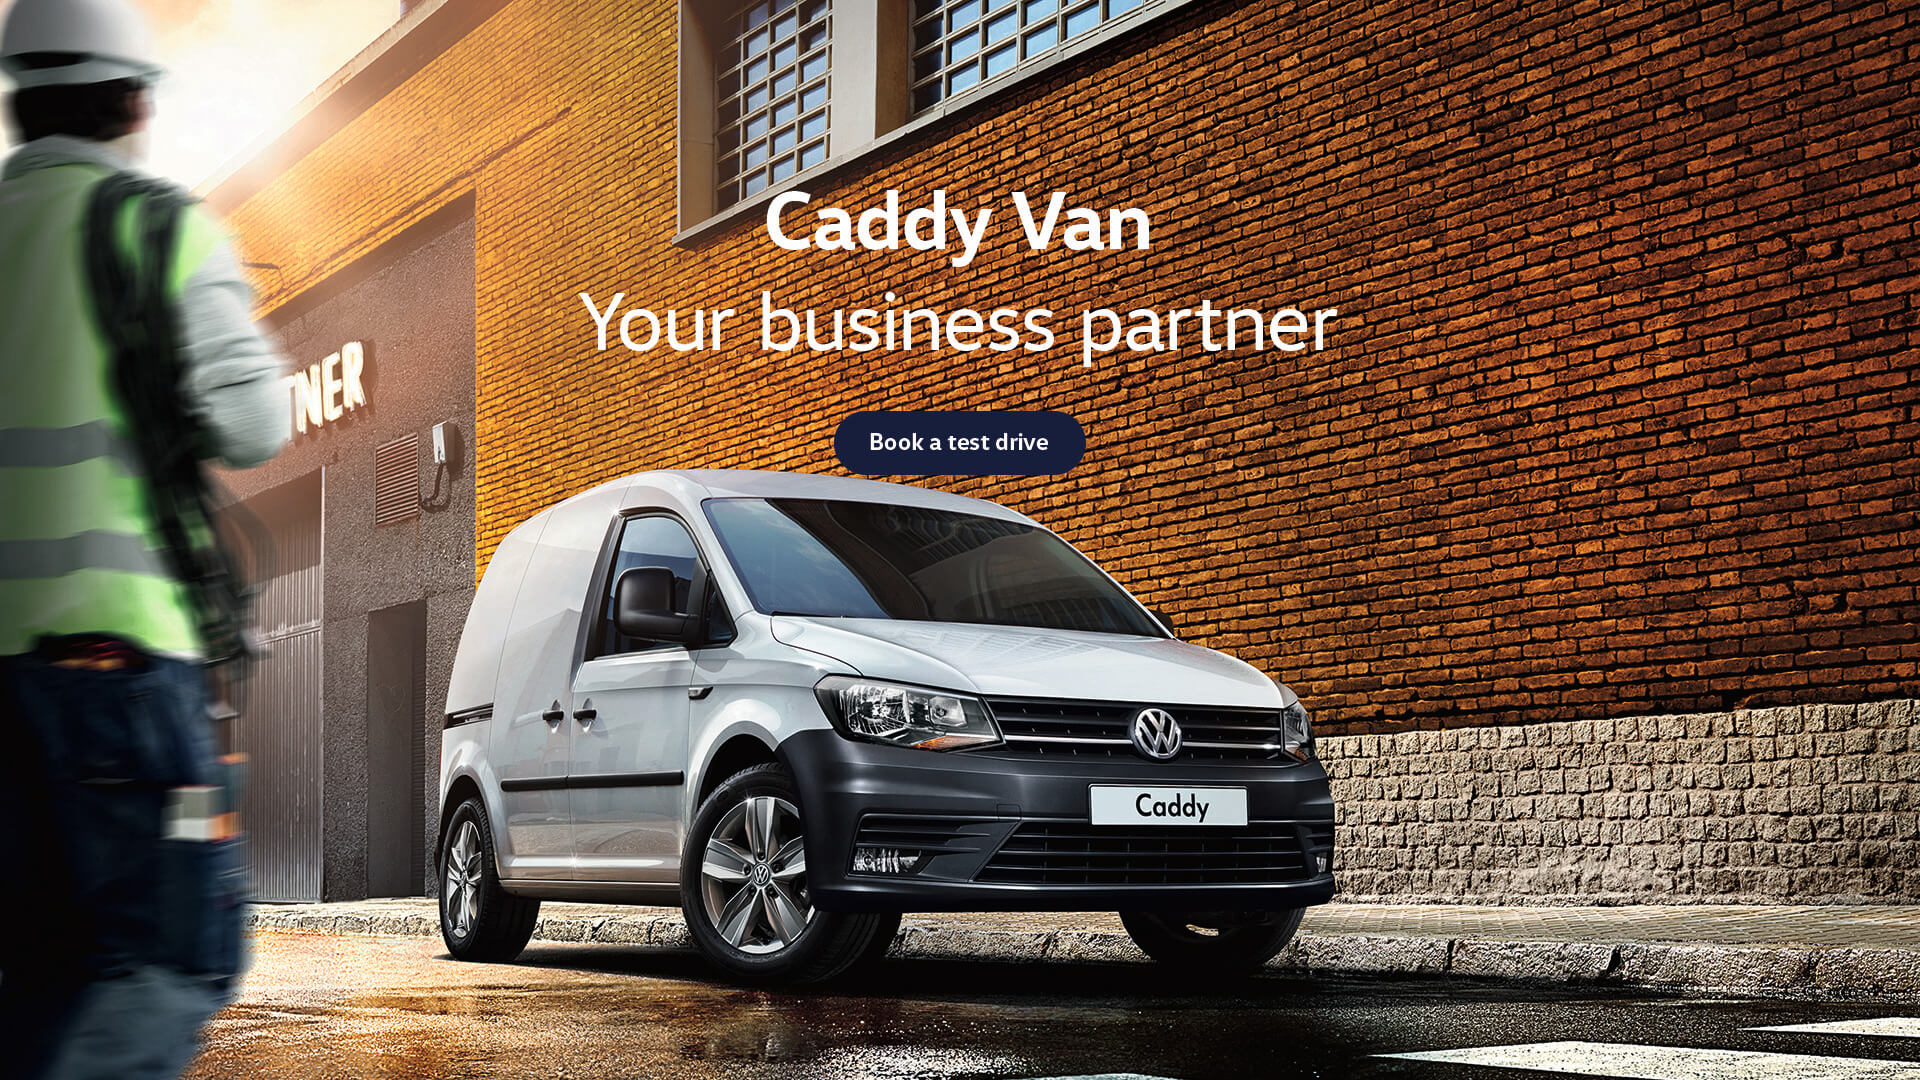 Volkswagen Caddy Van. Your business partner. Test drive today at Woodleys Volkswagen, Tamworth